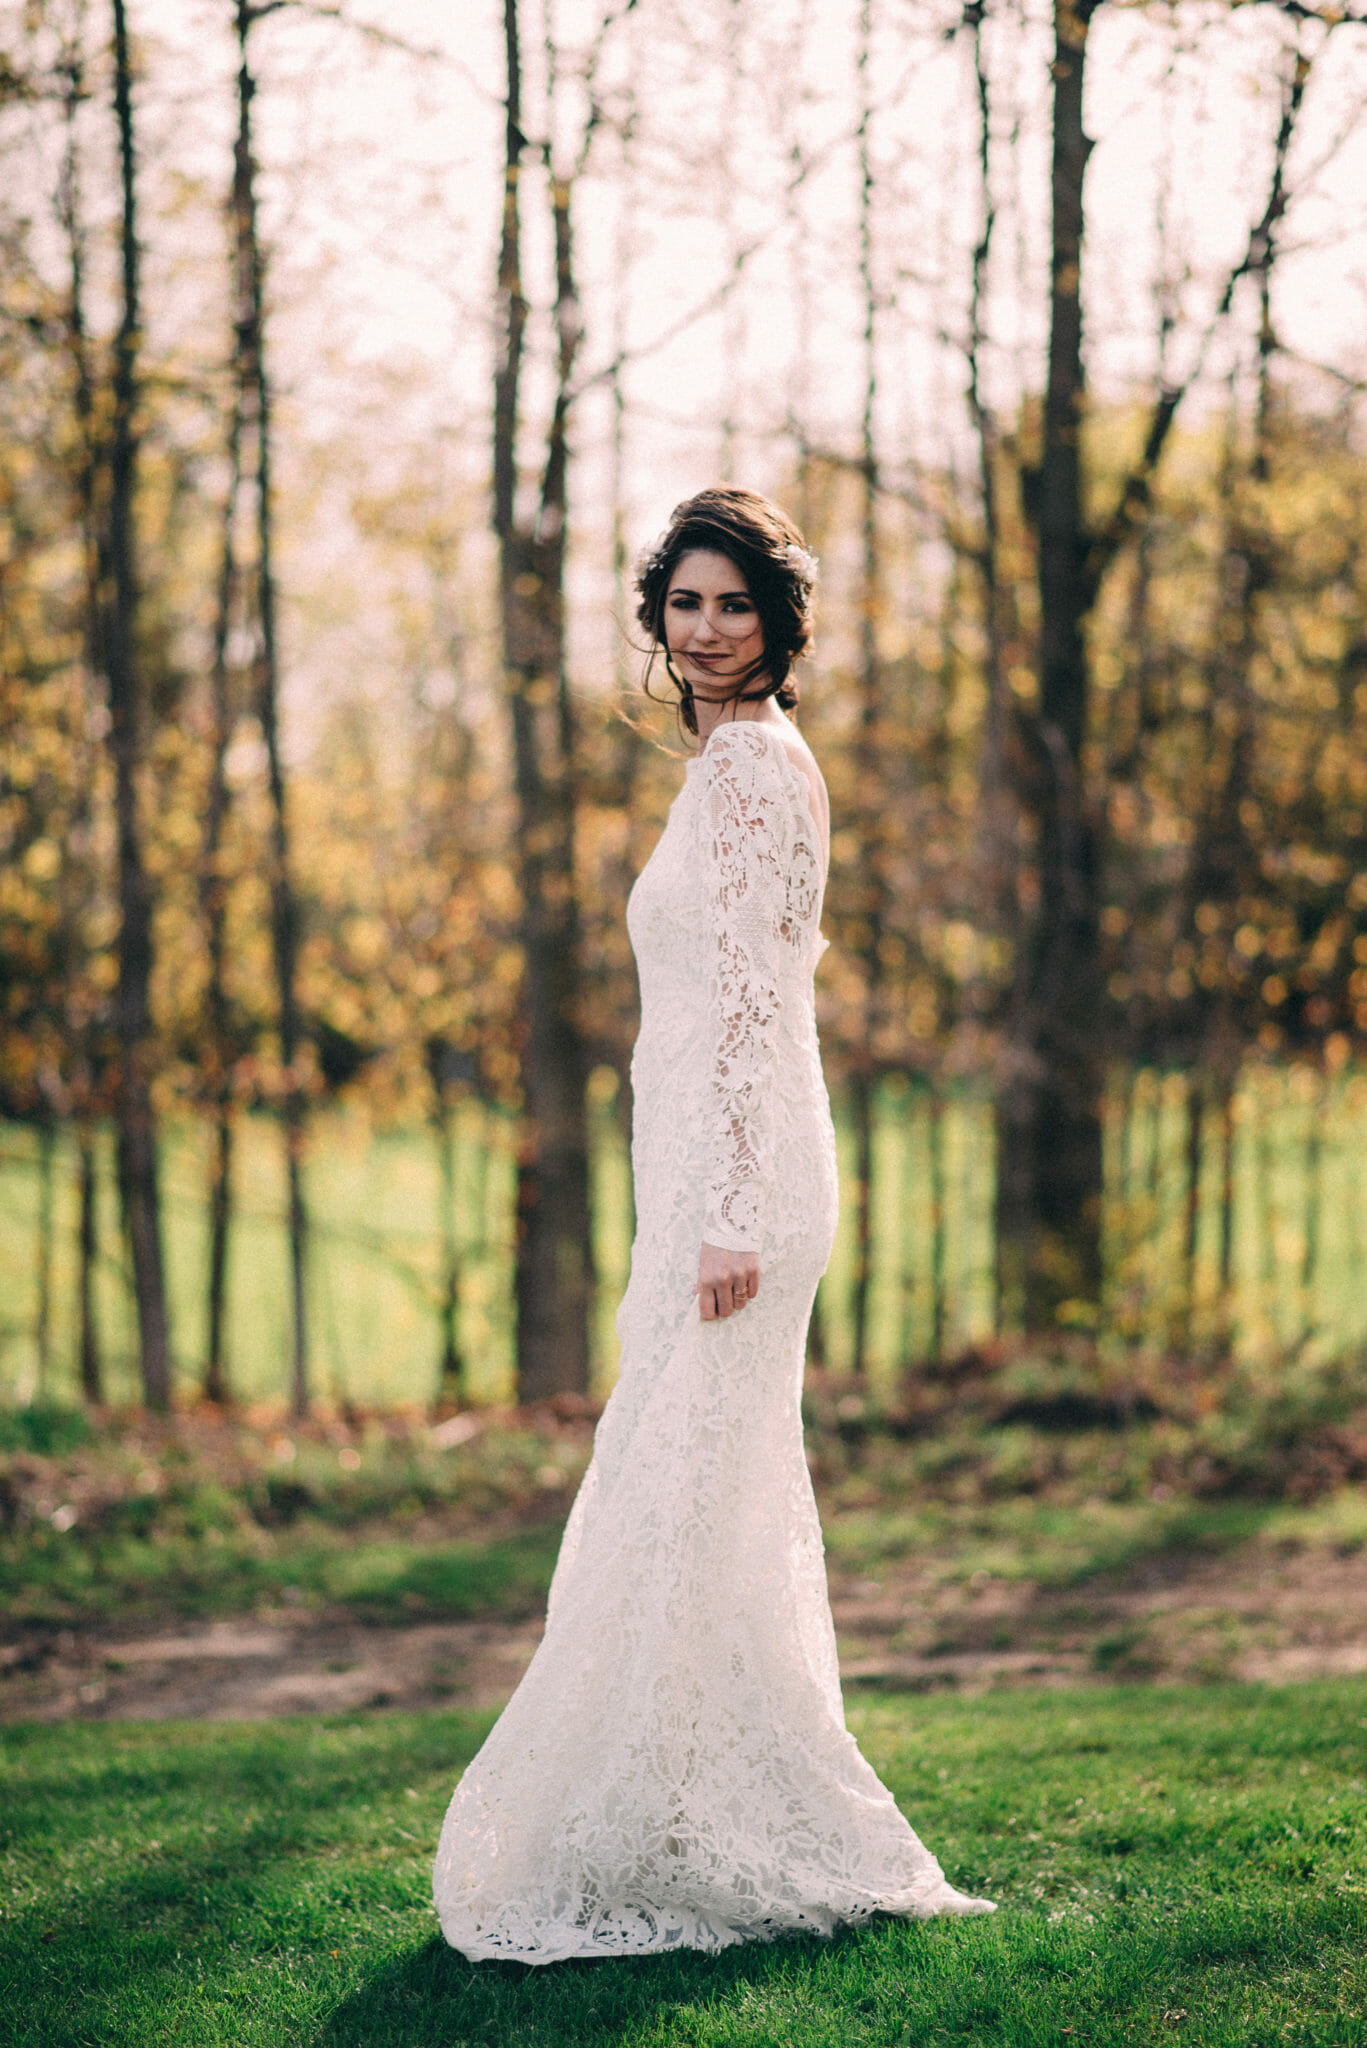 bride twirling in white lace gown